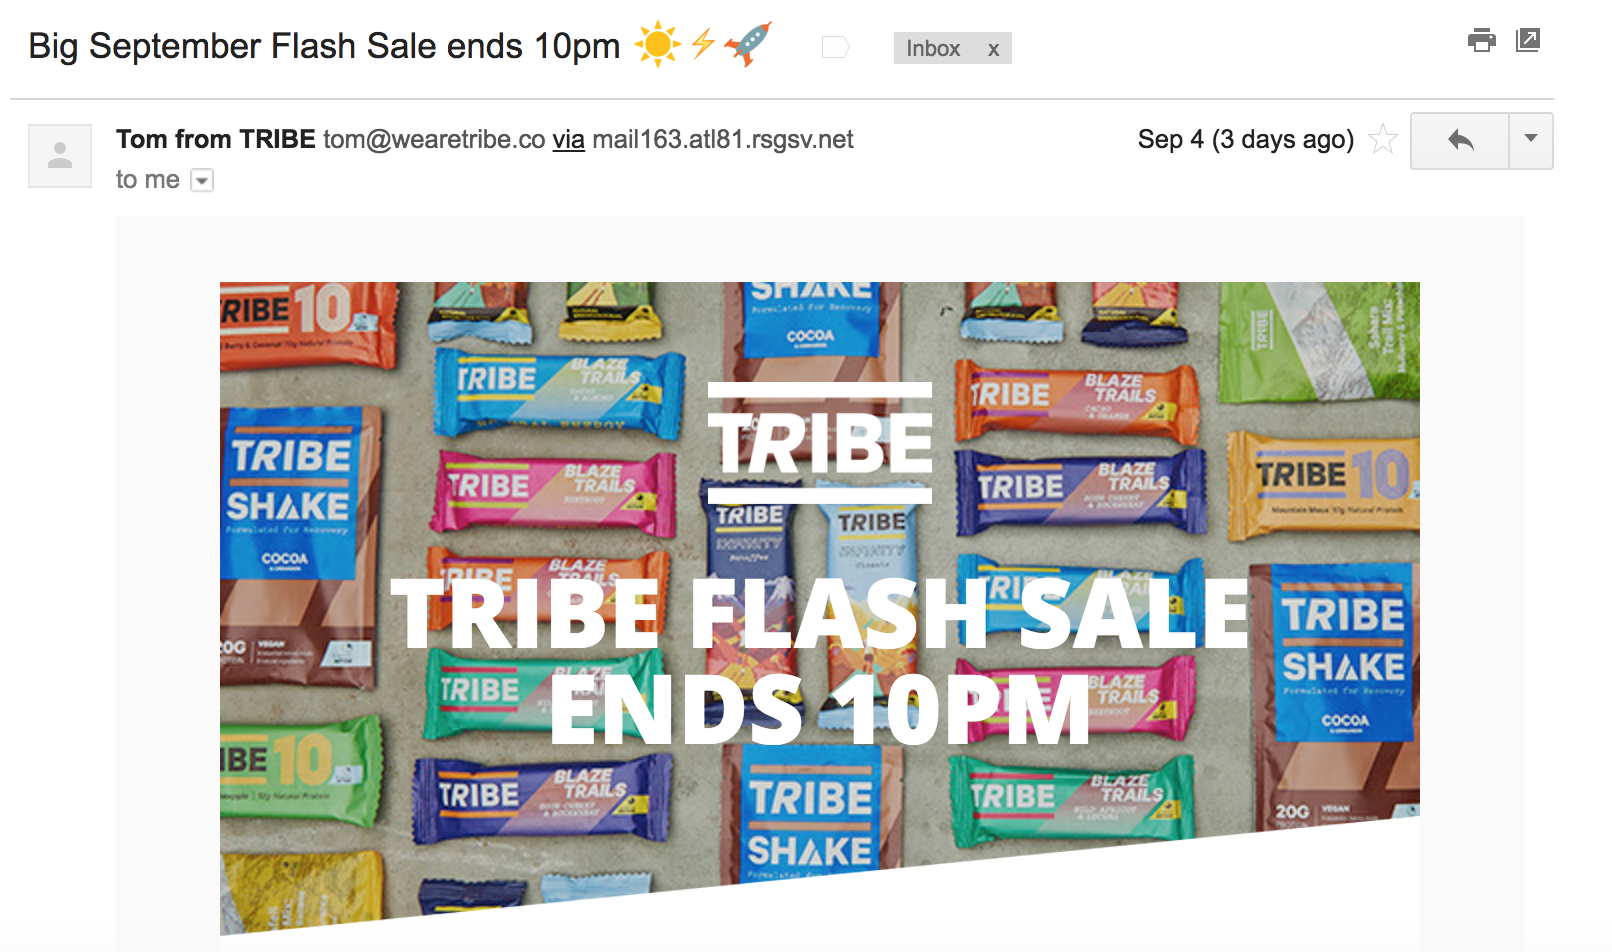 TRIBE email subject example